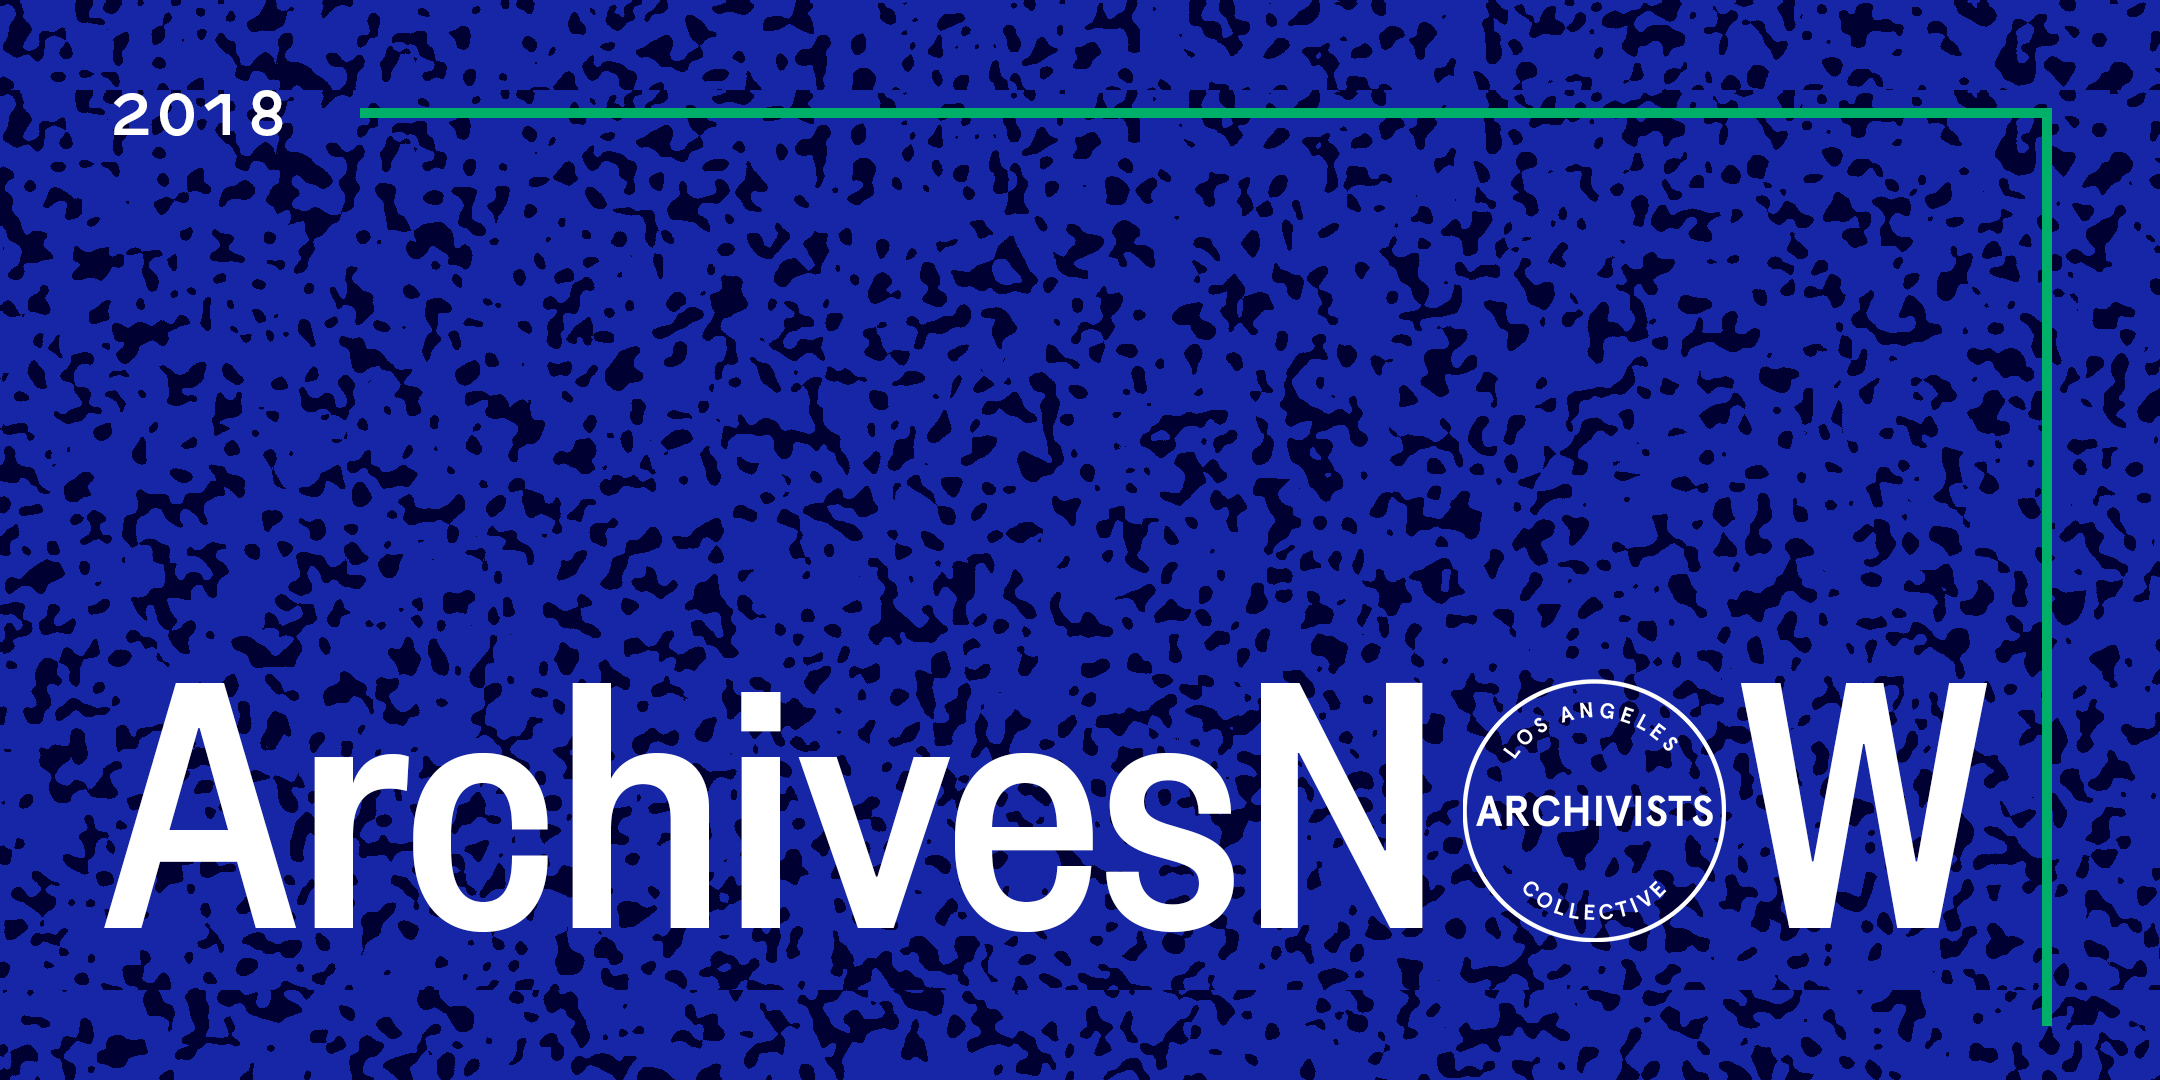 ArchivesNow banner 2018